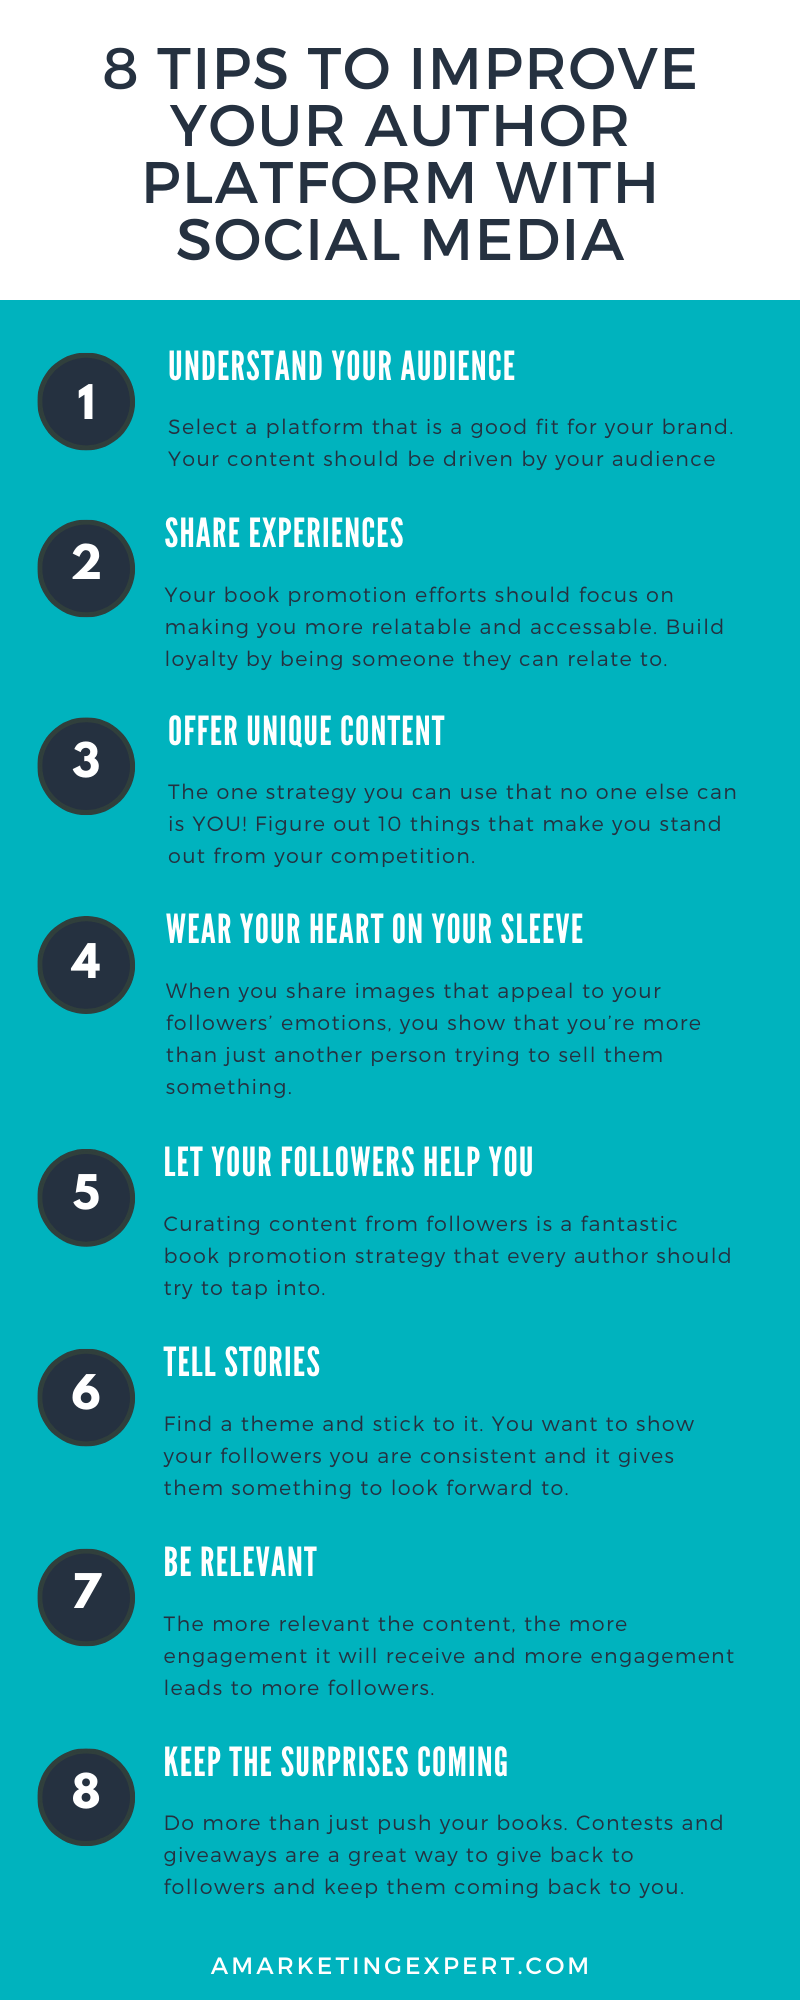 8-tips-to-improve-your-author-platform-with-social-media-infographic